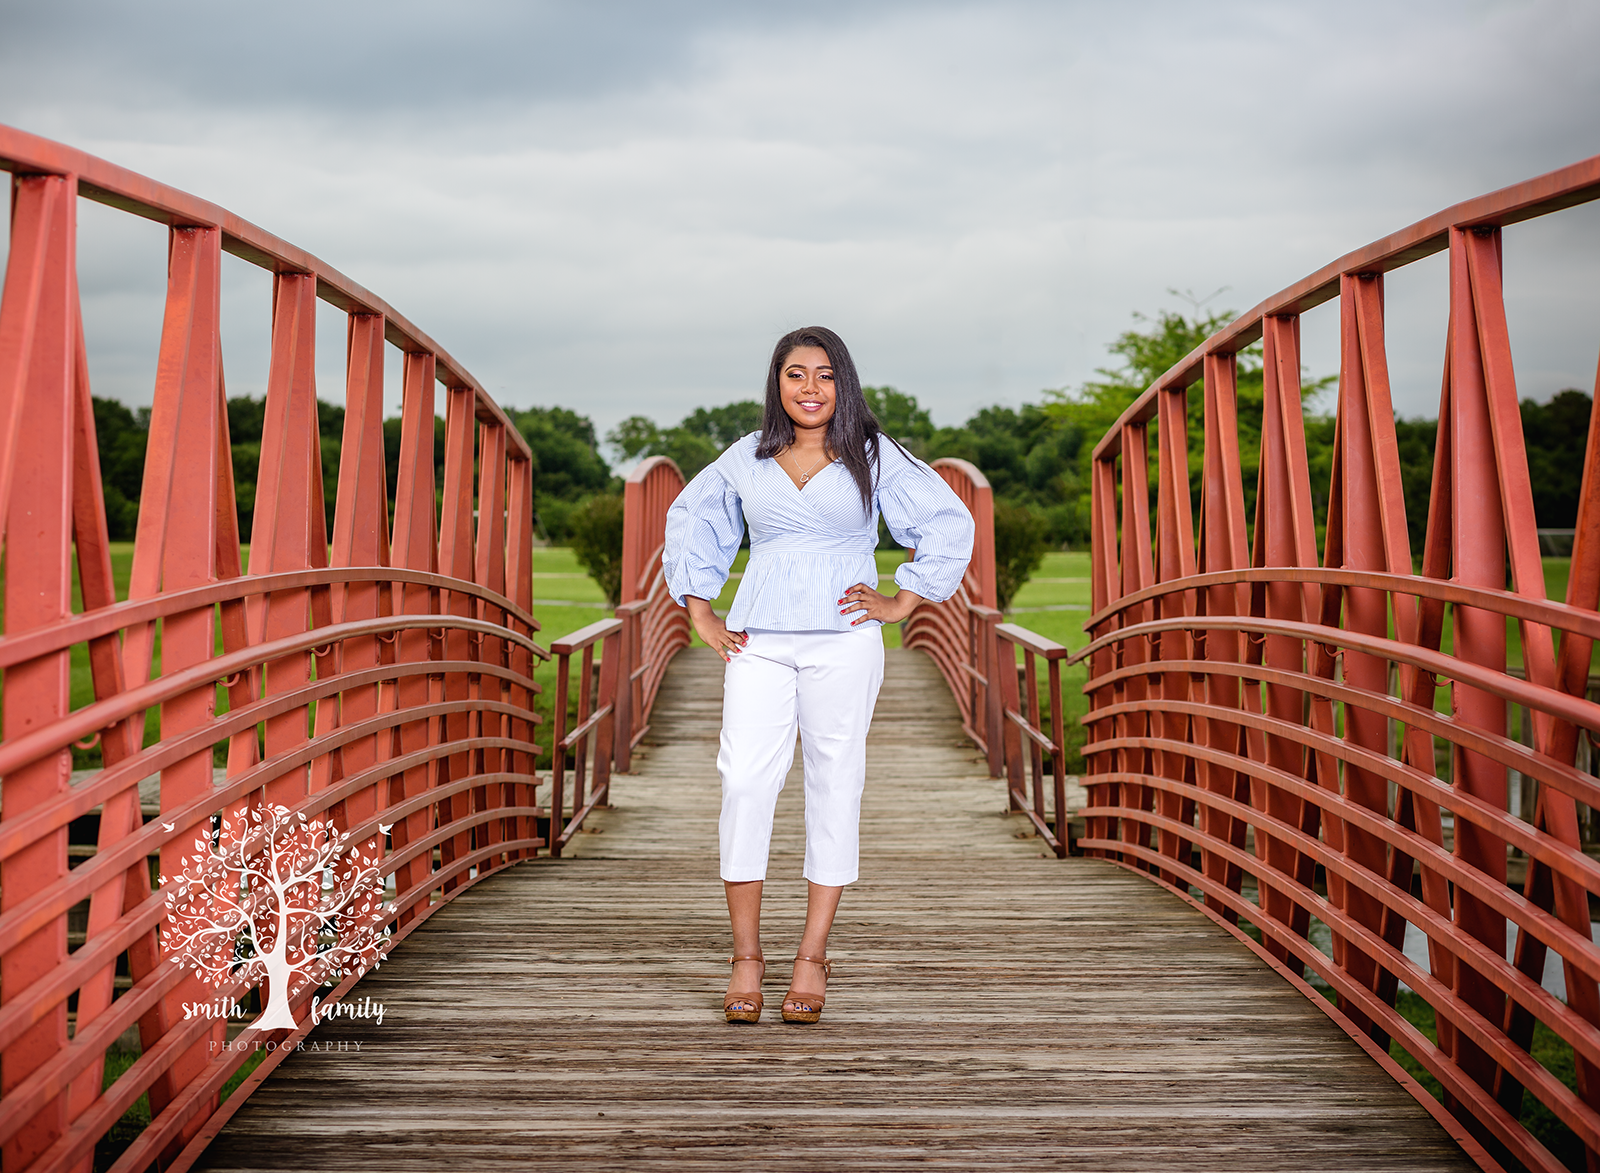 """Mrs. Smith is amazing! She is very patient and puts her all into her work. I have bragged about her to everyone I have spoken to. Can't wait to choose her for family pics. Mrs. Smith, you rock!👍❤"" - Yvette T."